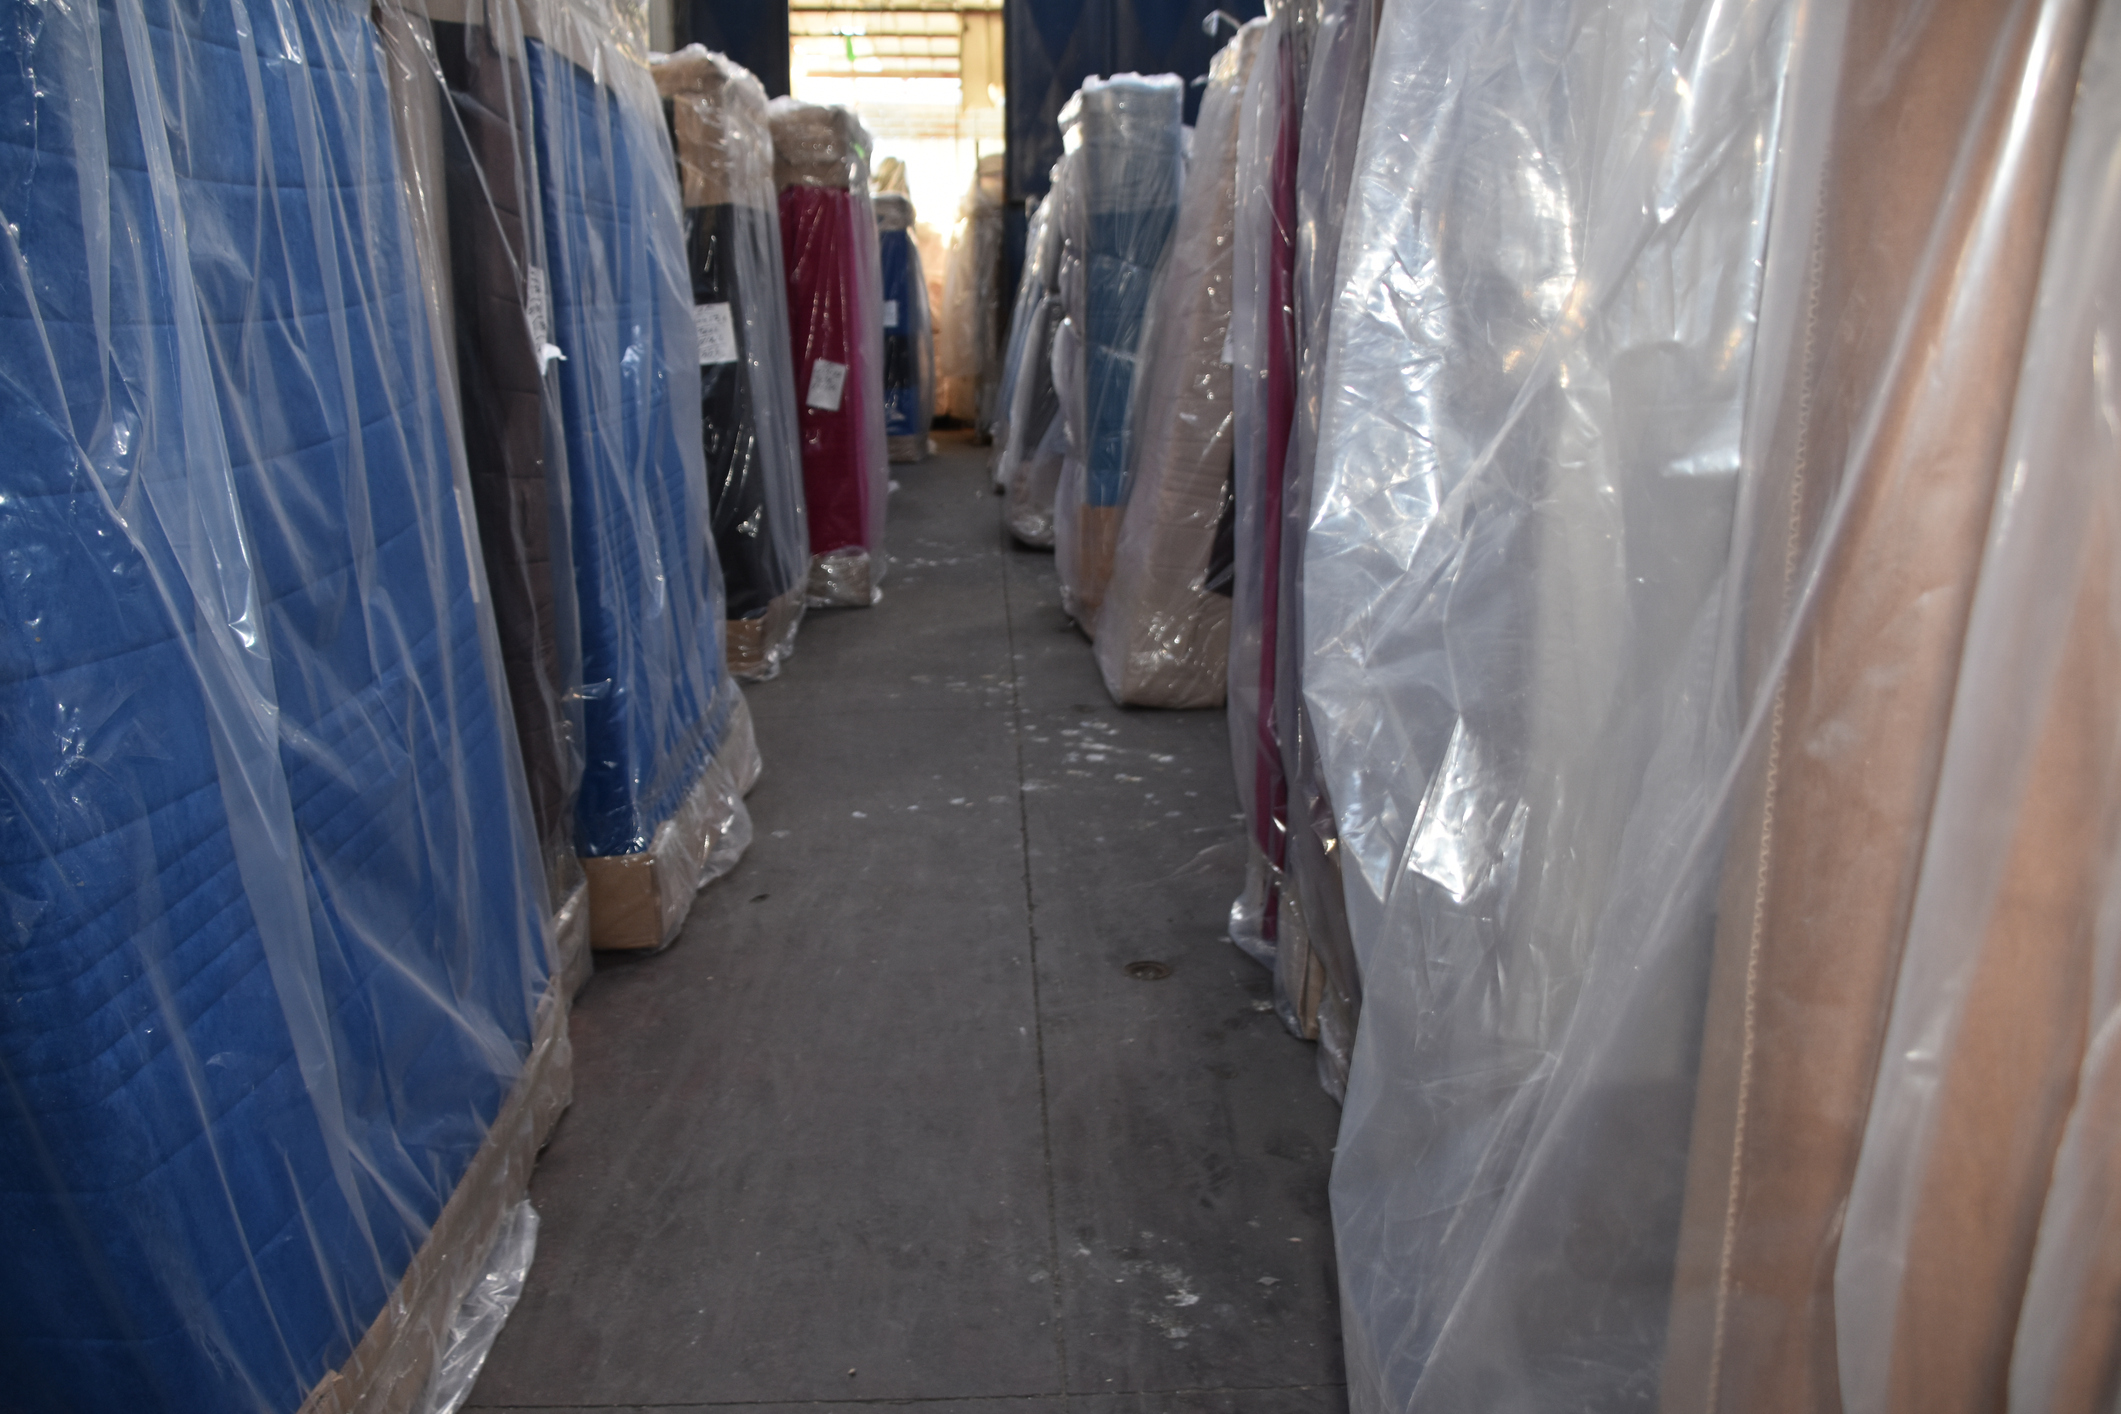 7 Places to Donate Your Old Mattress Shop Appliances, HDTV's